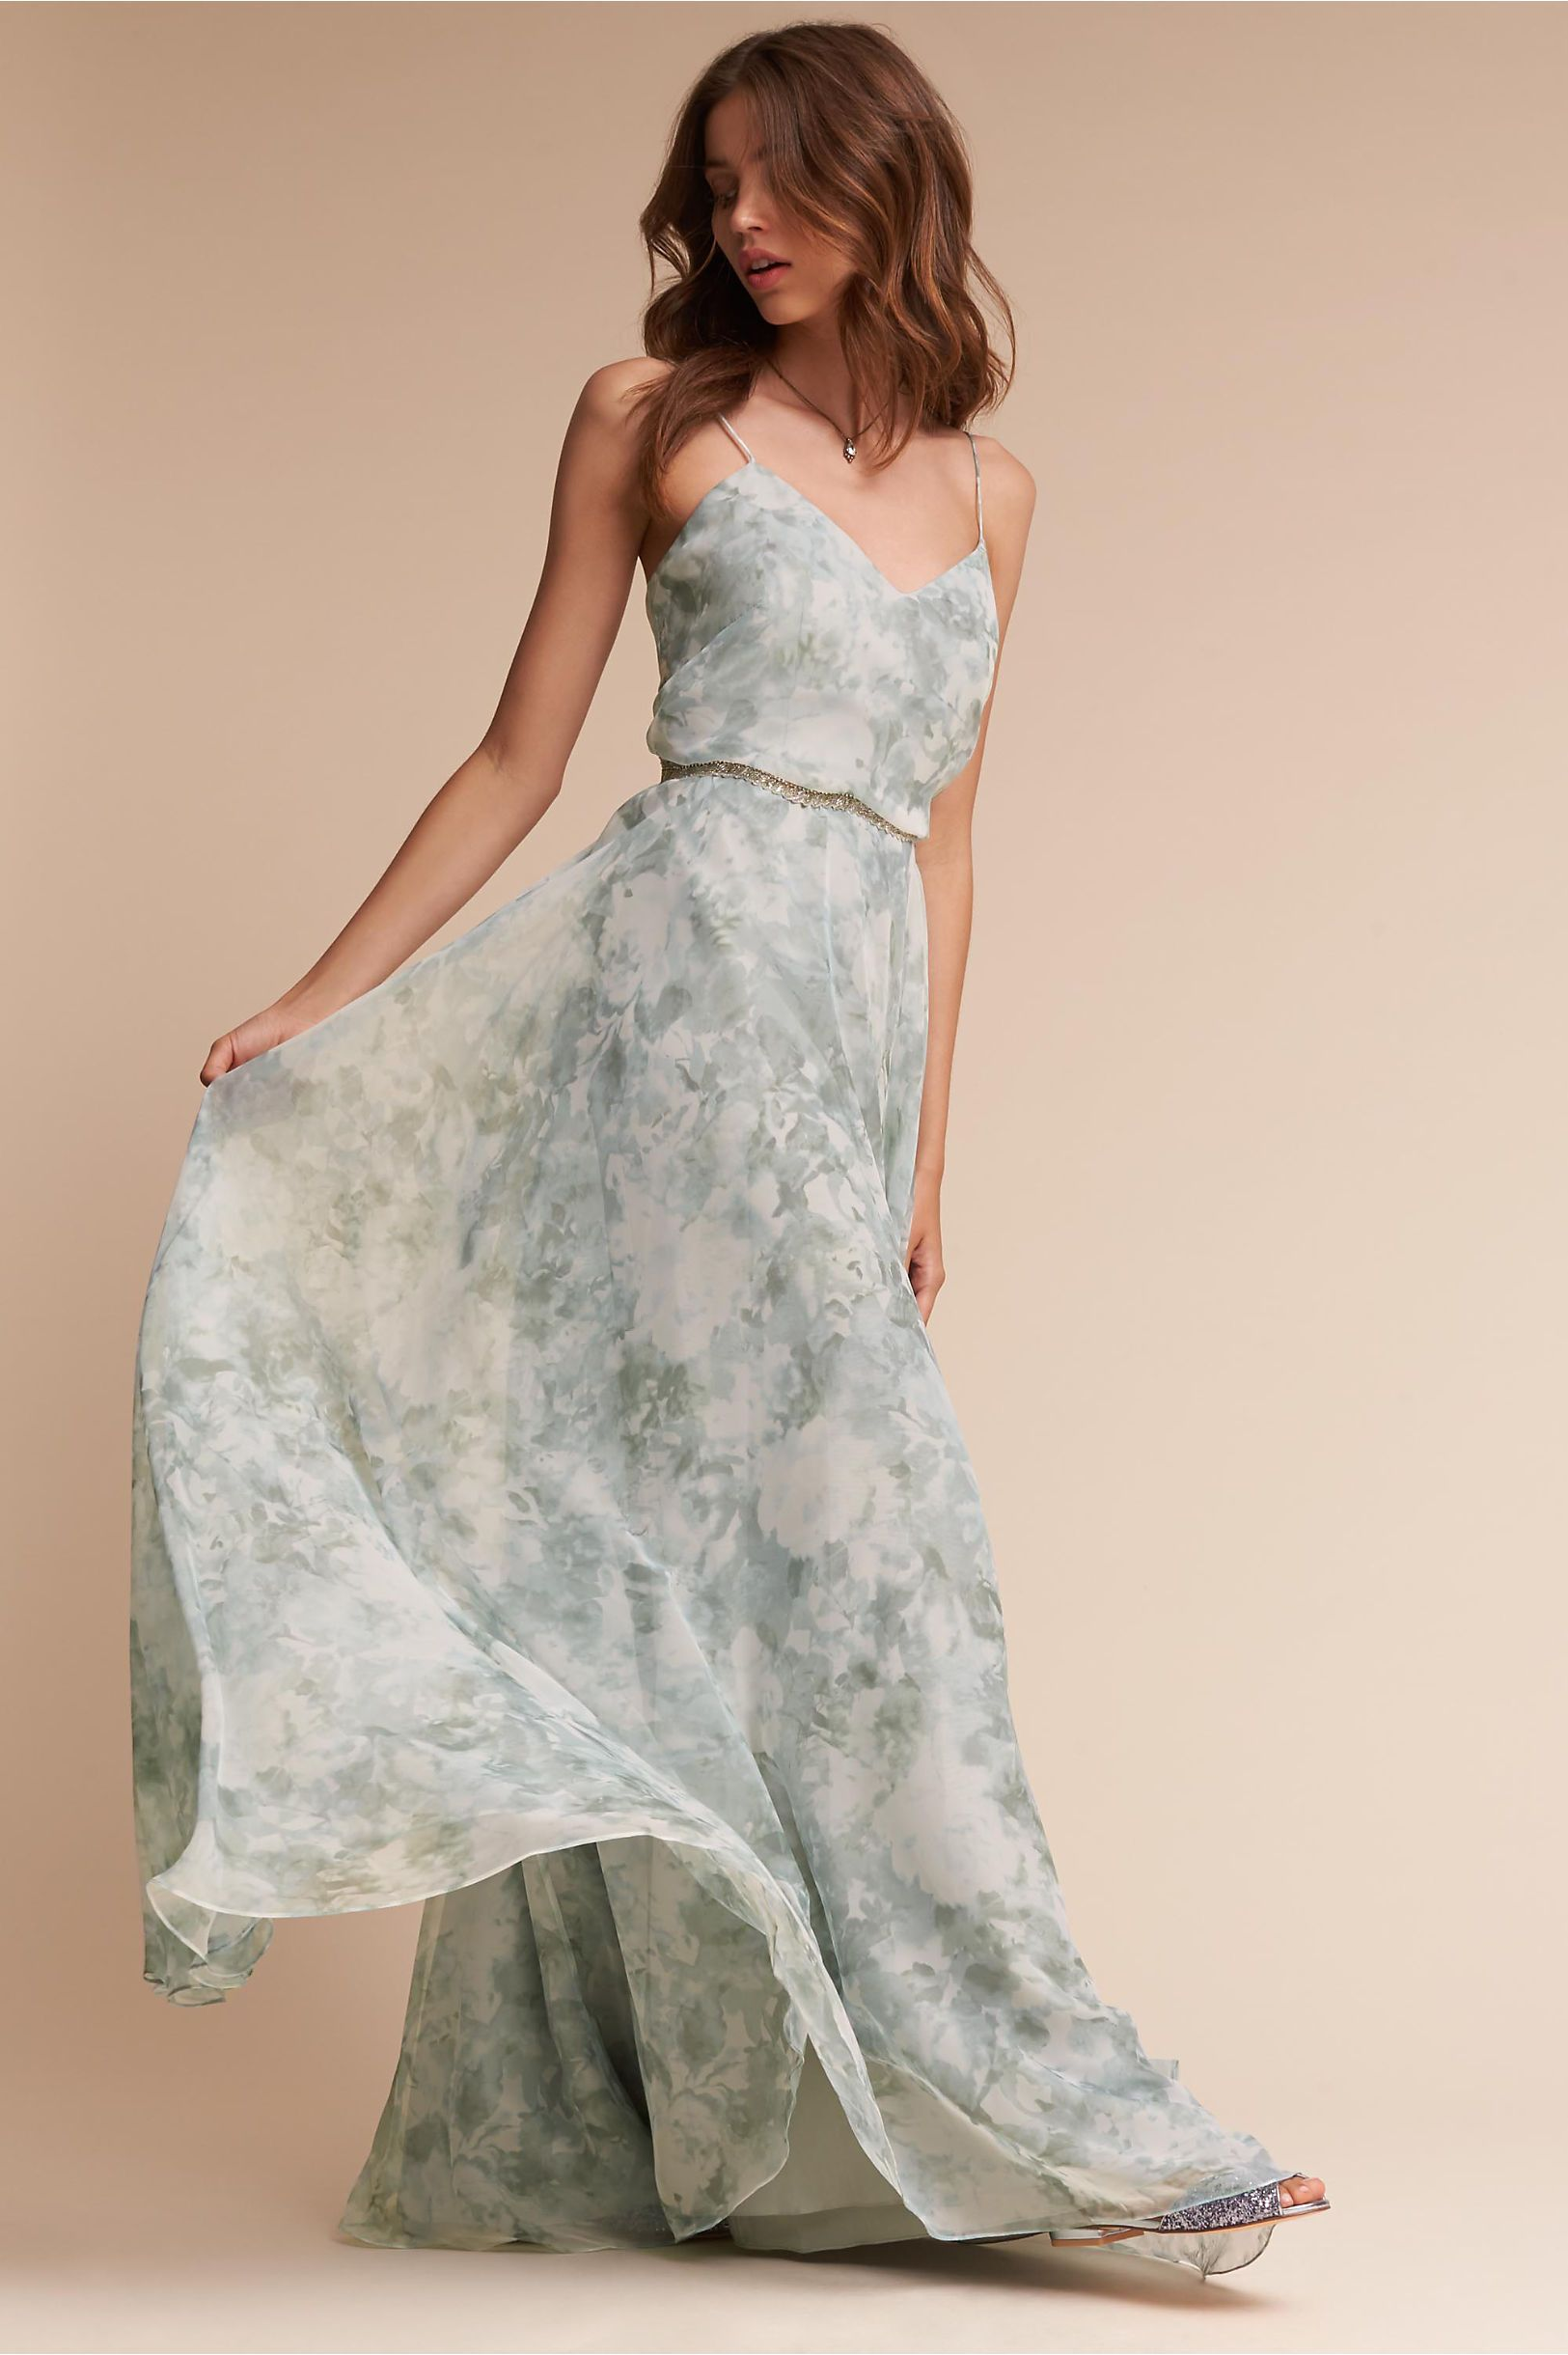 924da39914c8 BHLDN's Jenny Yoo Inesse Dress in Mist Multi | A&J - adventure team ...